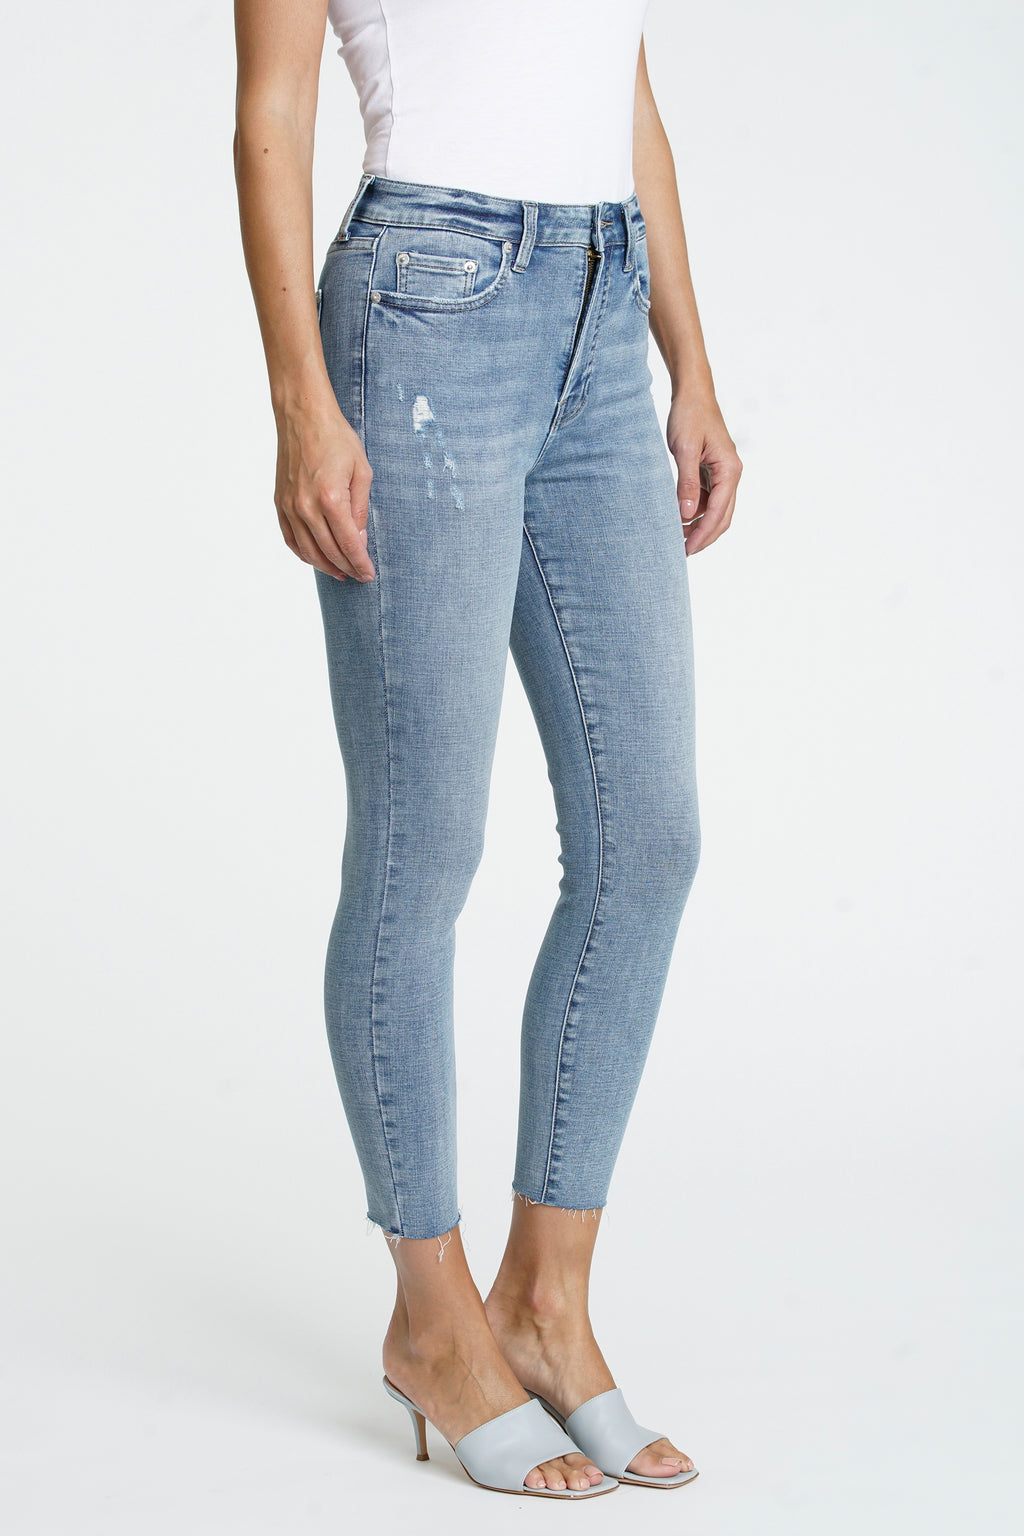 Aline High Rise Skinny Crop - Shallow